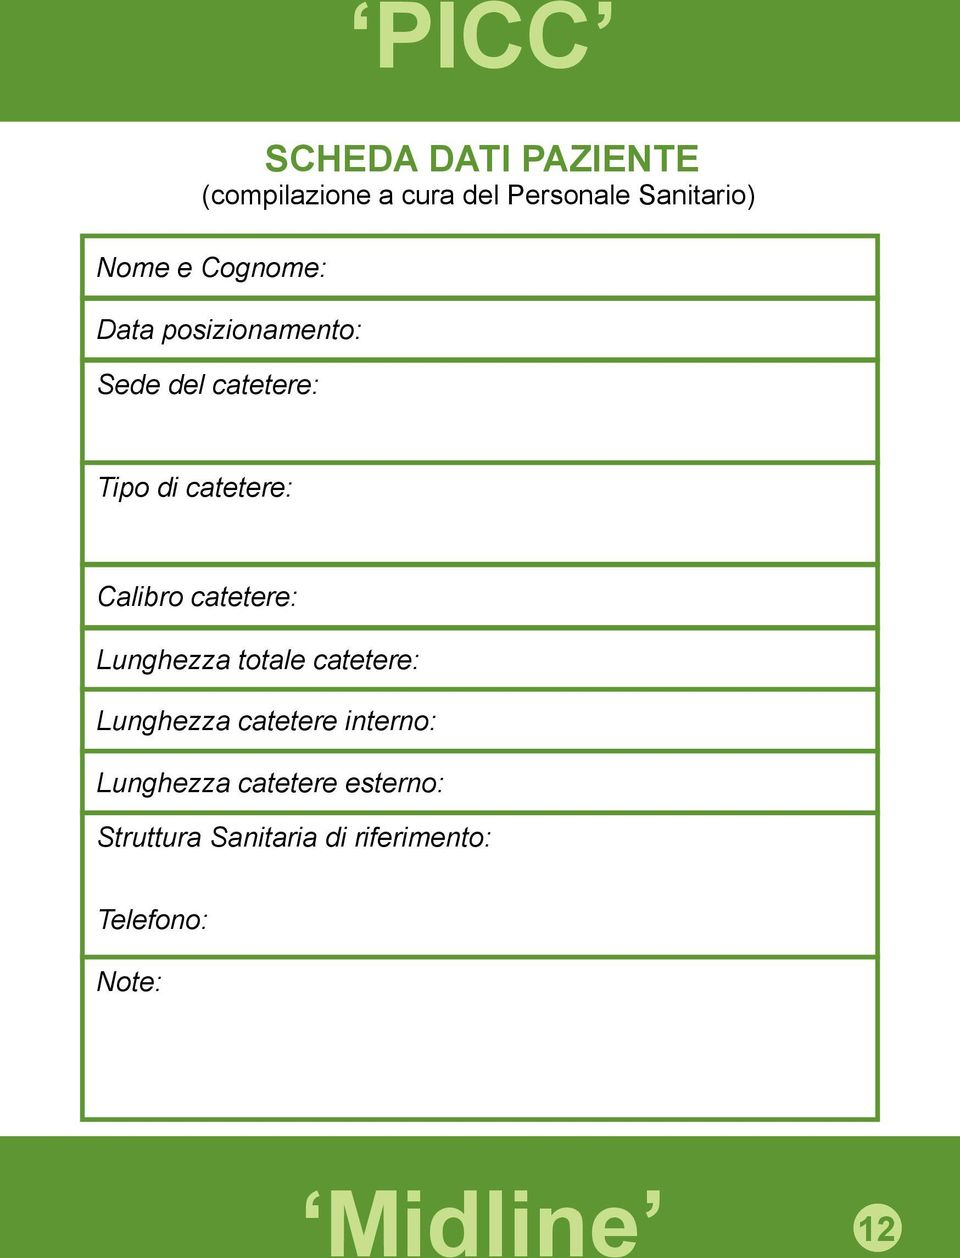 Calibro catetere: Lunghezza totale catetere: Lunghezza catetere interno: